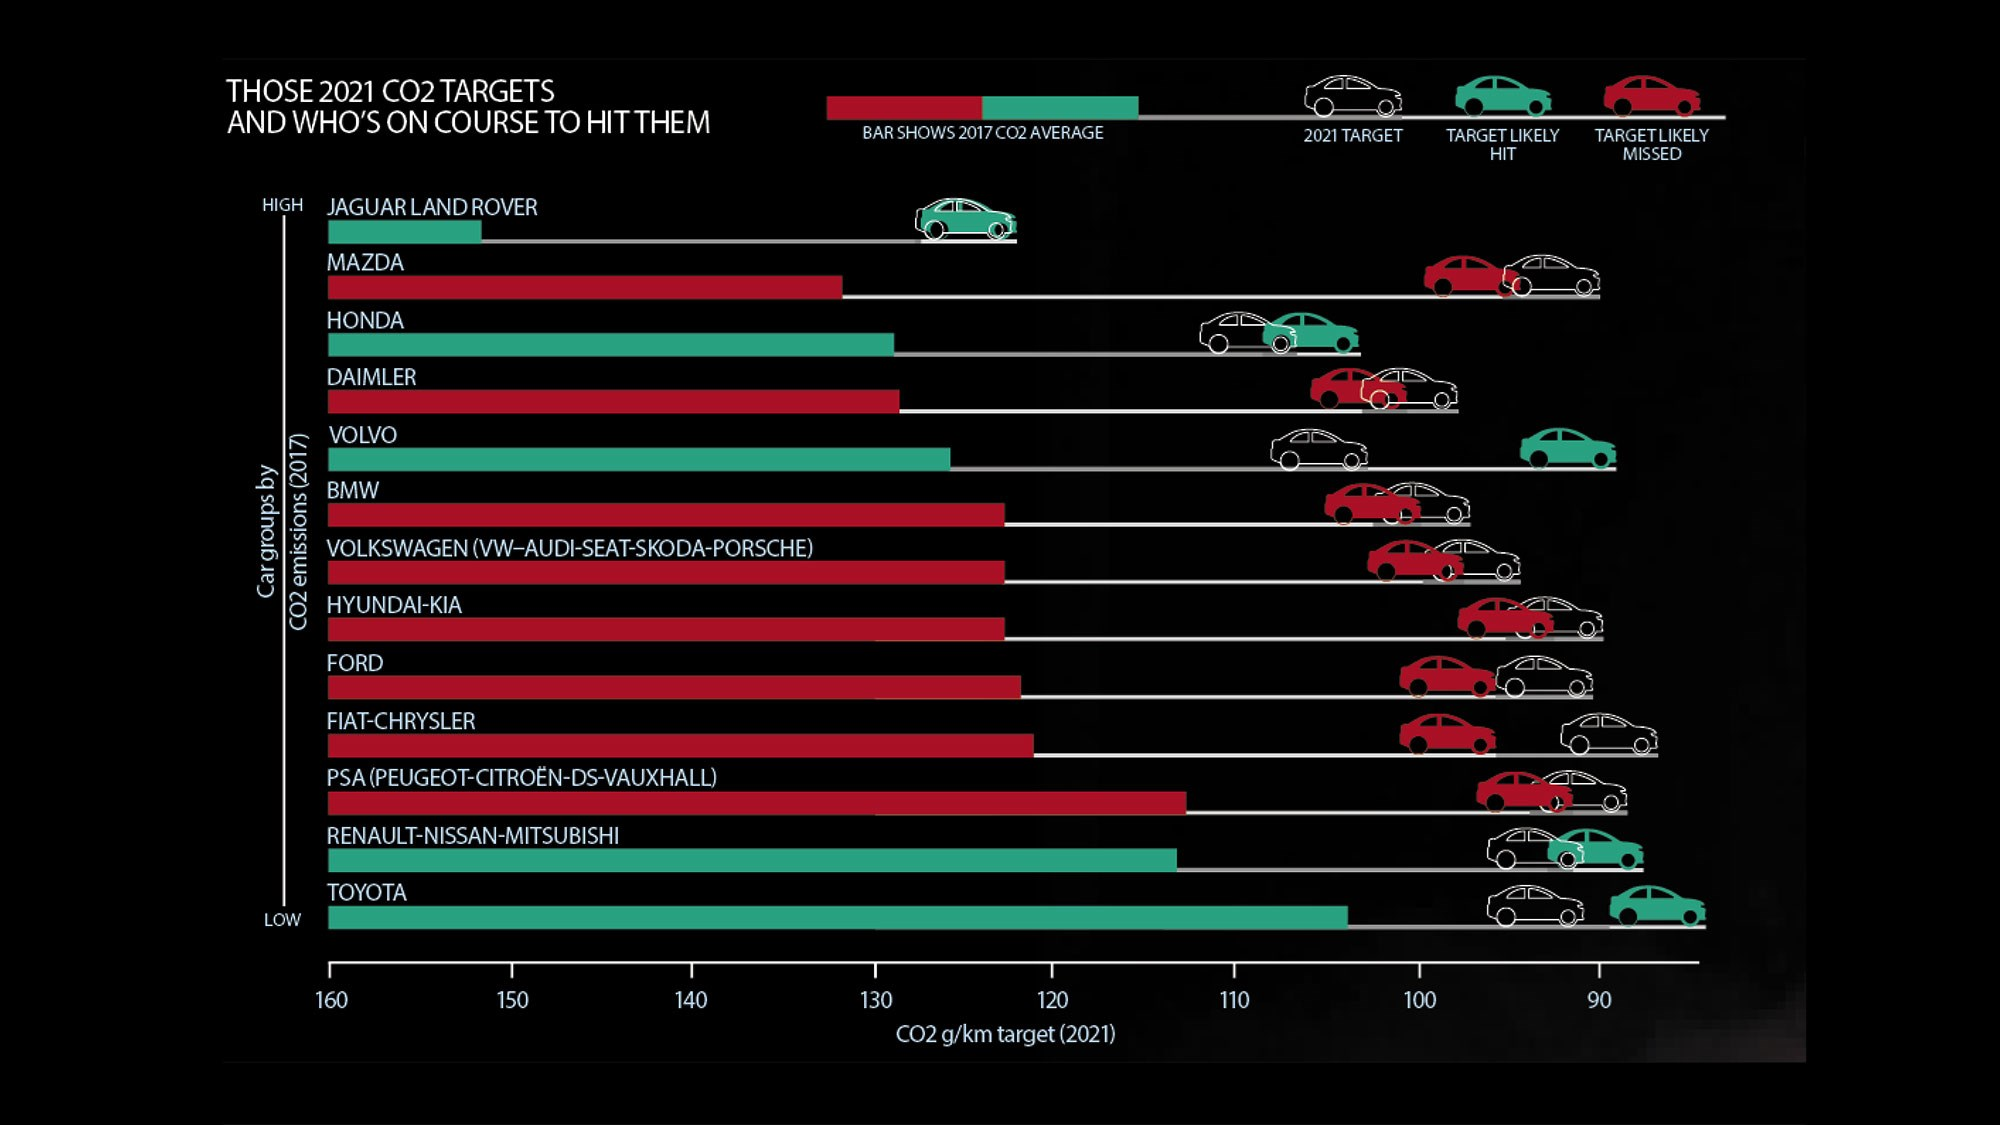 Car Co2 Targets In Europe The 2021 Limit Of 95g Km Car Magazine